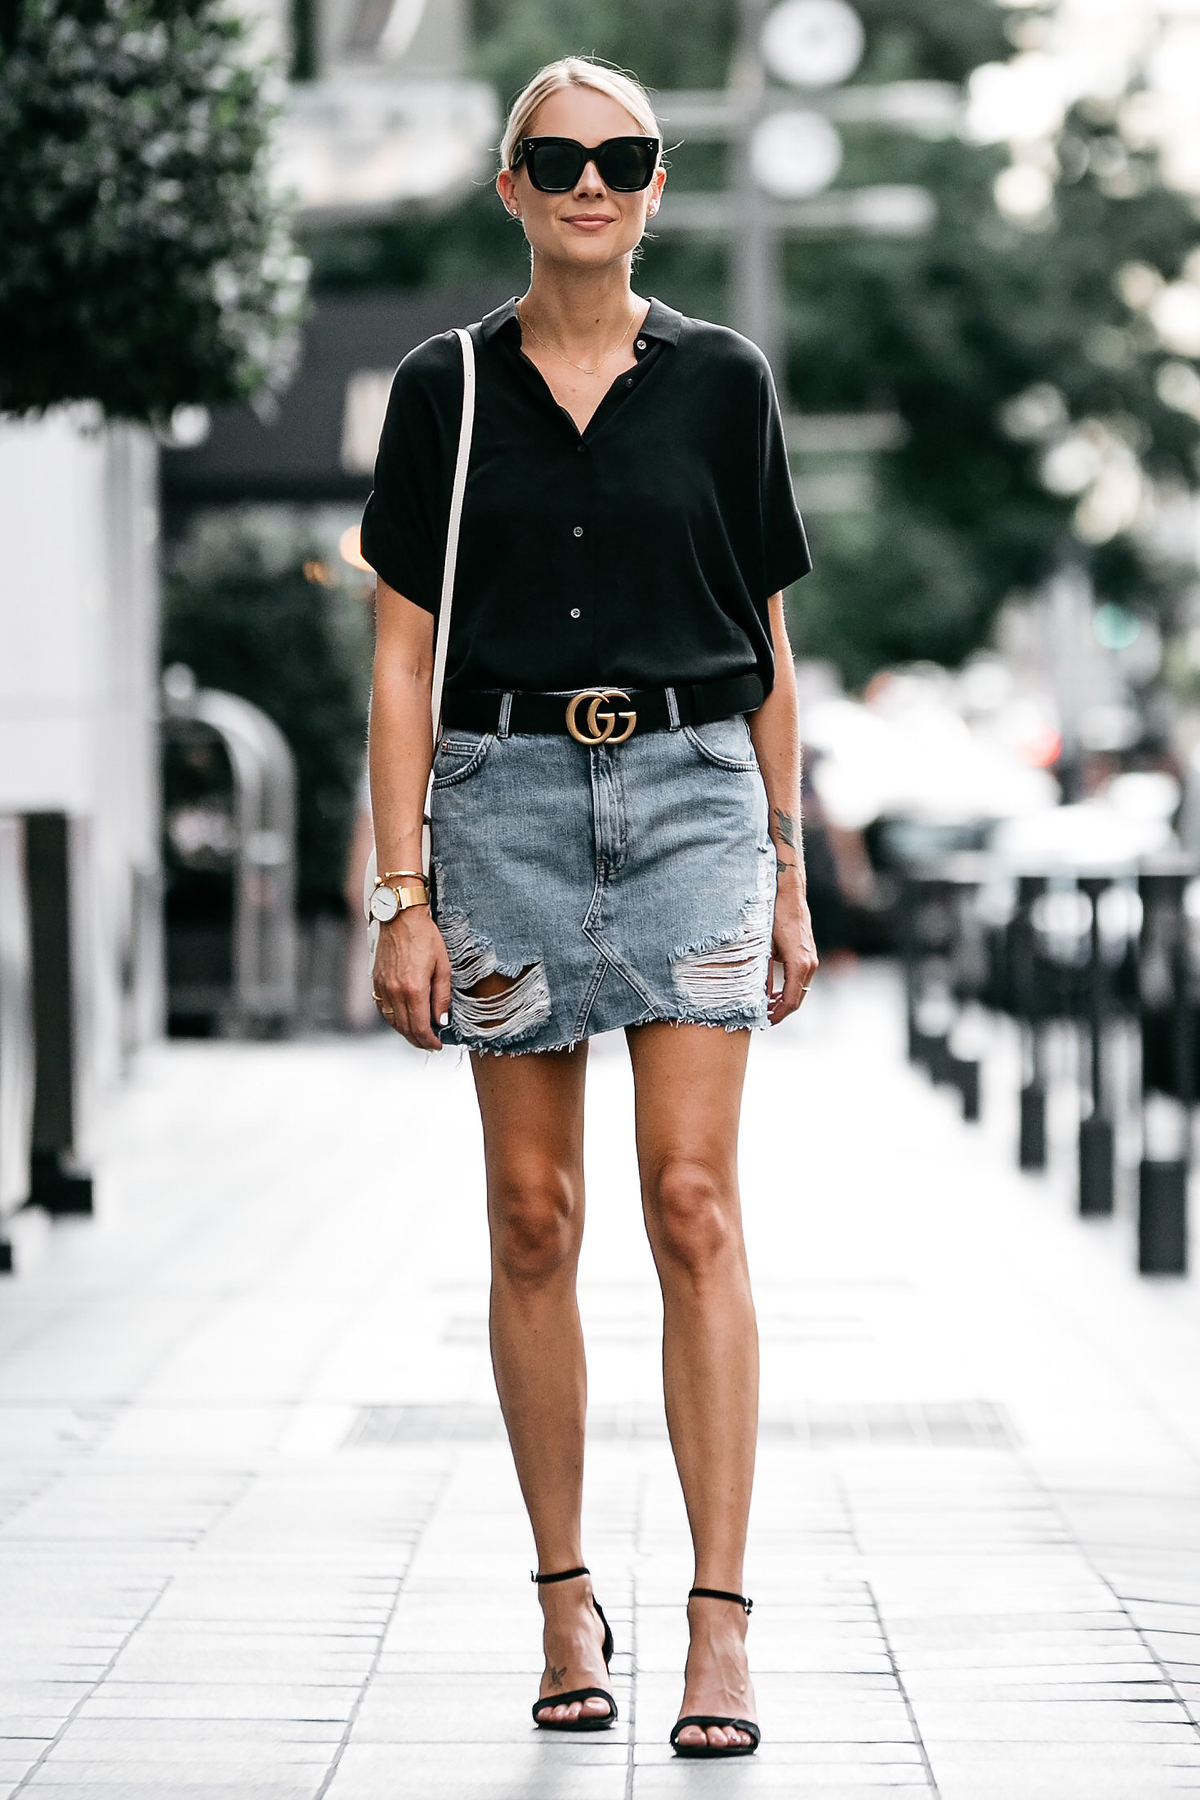 Blonde Woman Wearing Everlane Black Short Sleeve Shirt Topshop Ripped Denim  Skirt Outfit Gucci Marmont Belt 4f47108ca4